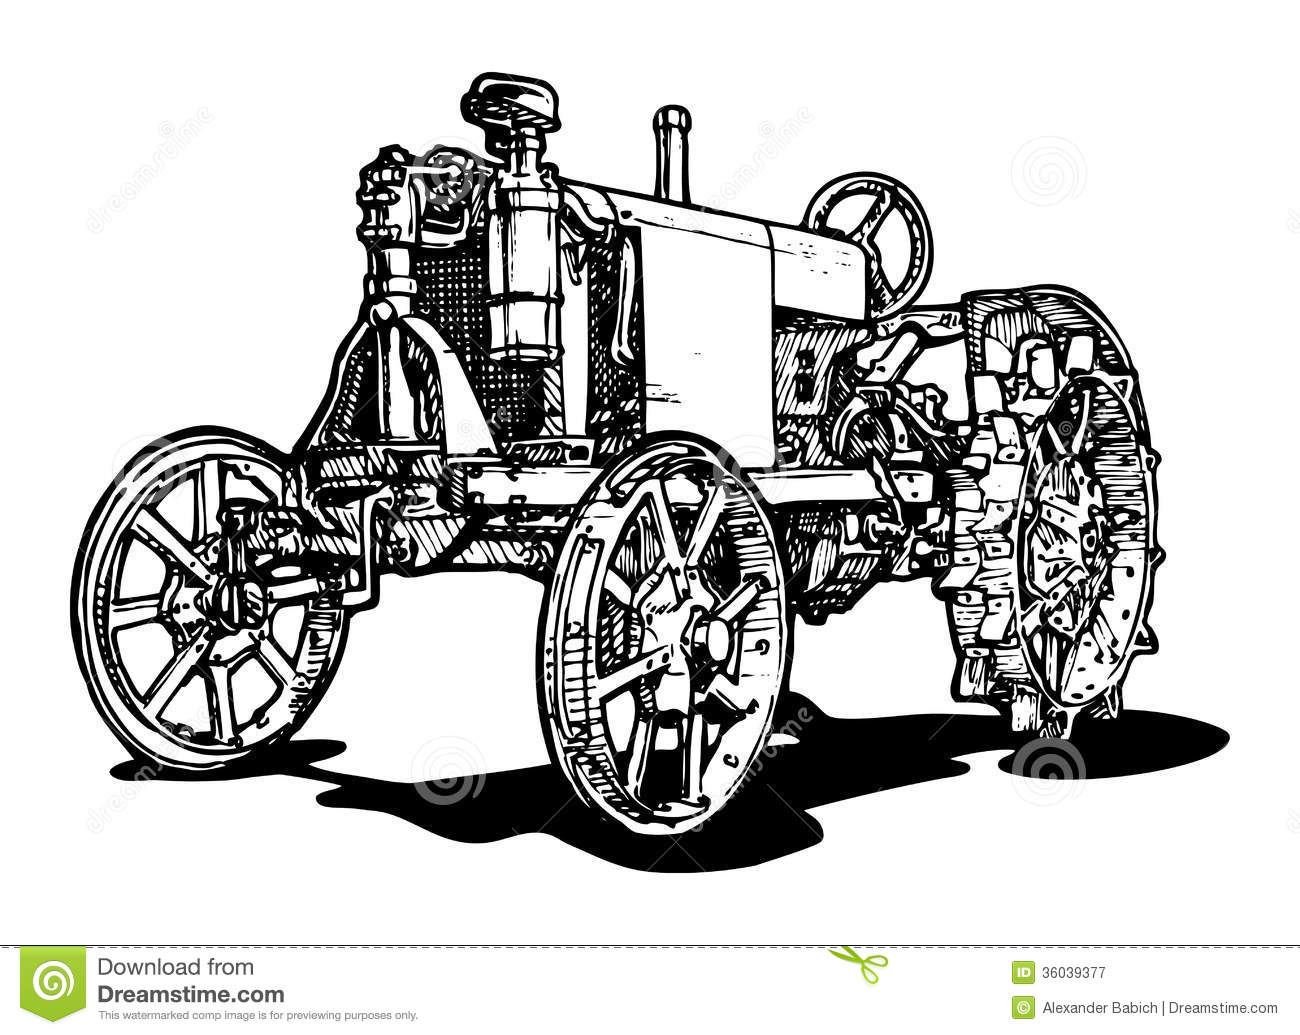 Old Tractor Clipart additionally John Deere Logo Black And White moreover John Deere Green Tractor Clipart likewise Tracteur John Deere together with Toro Wheel Horse Wiring Diagram. on old john deere tractors